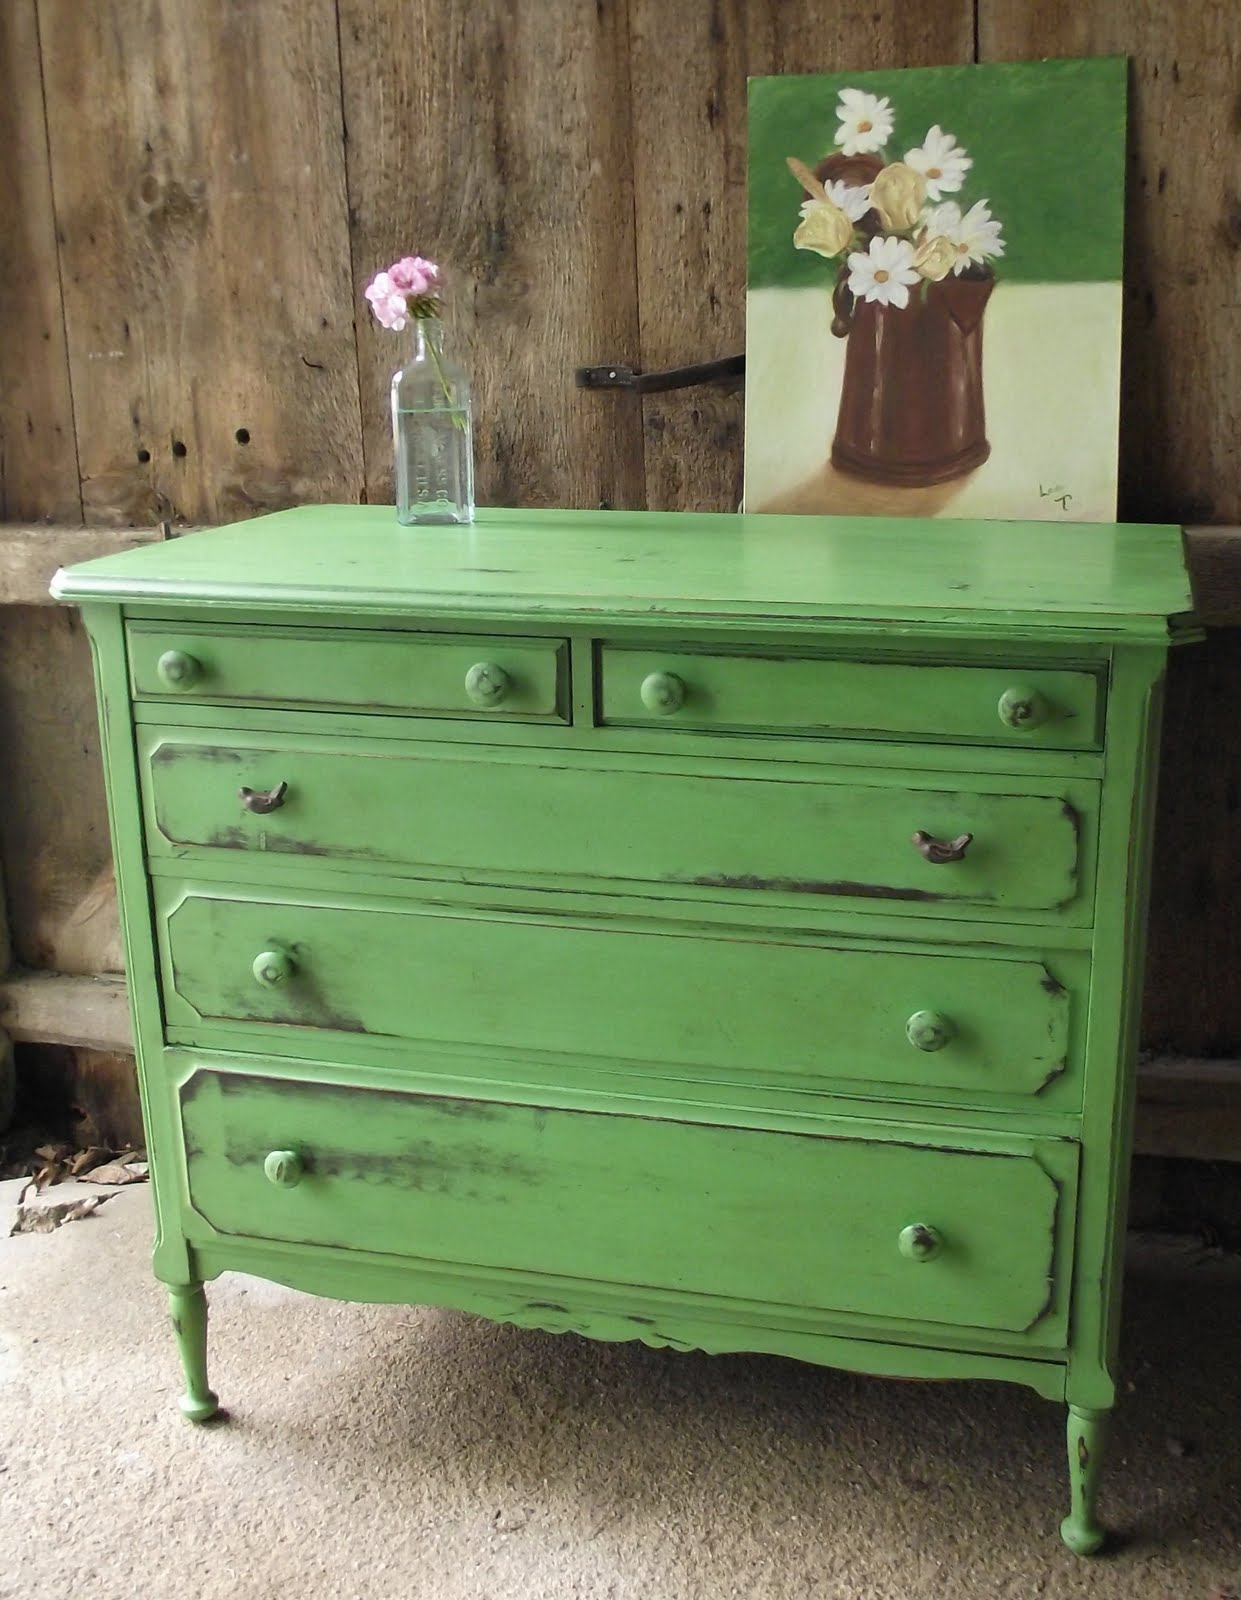 Green Painted Furniture Brilliant With Annie Sloan Chalk Paint Green Pictures